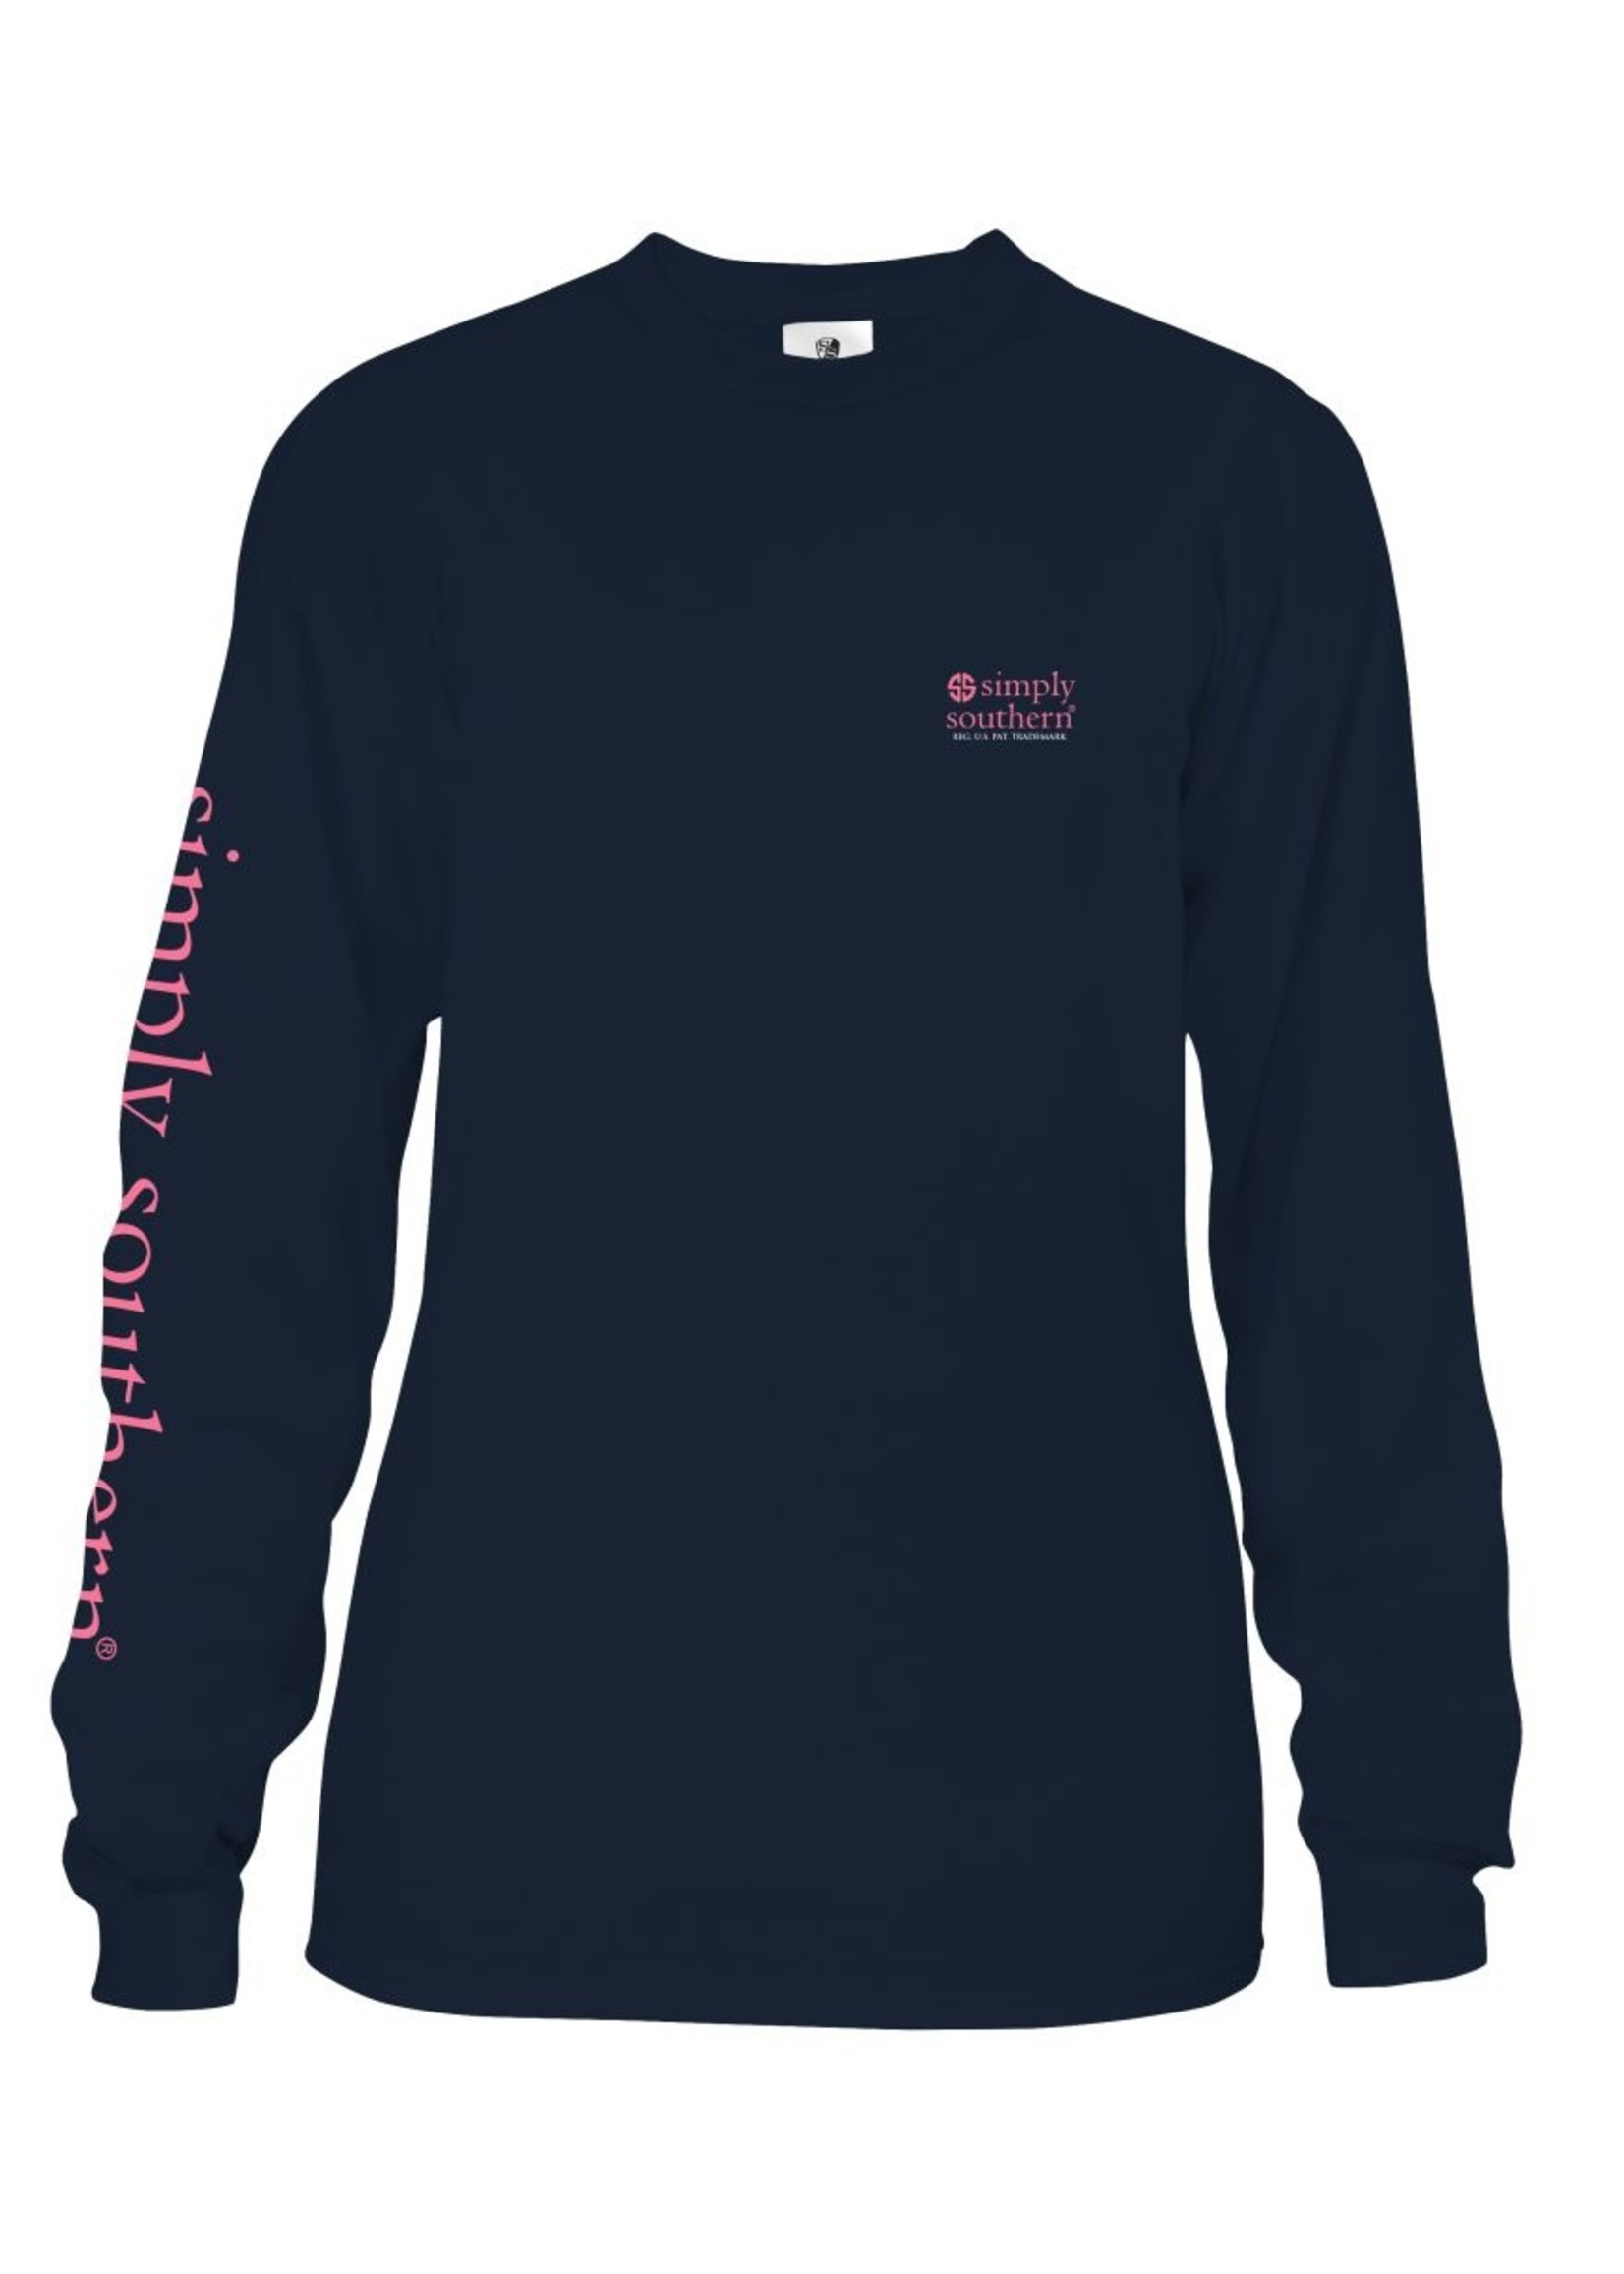 Simply Southern Collection Youth - Sweeten With Kindness Long Sleeve T-Shirt - Midnight